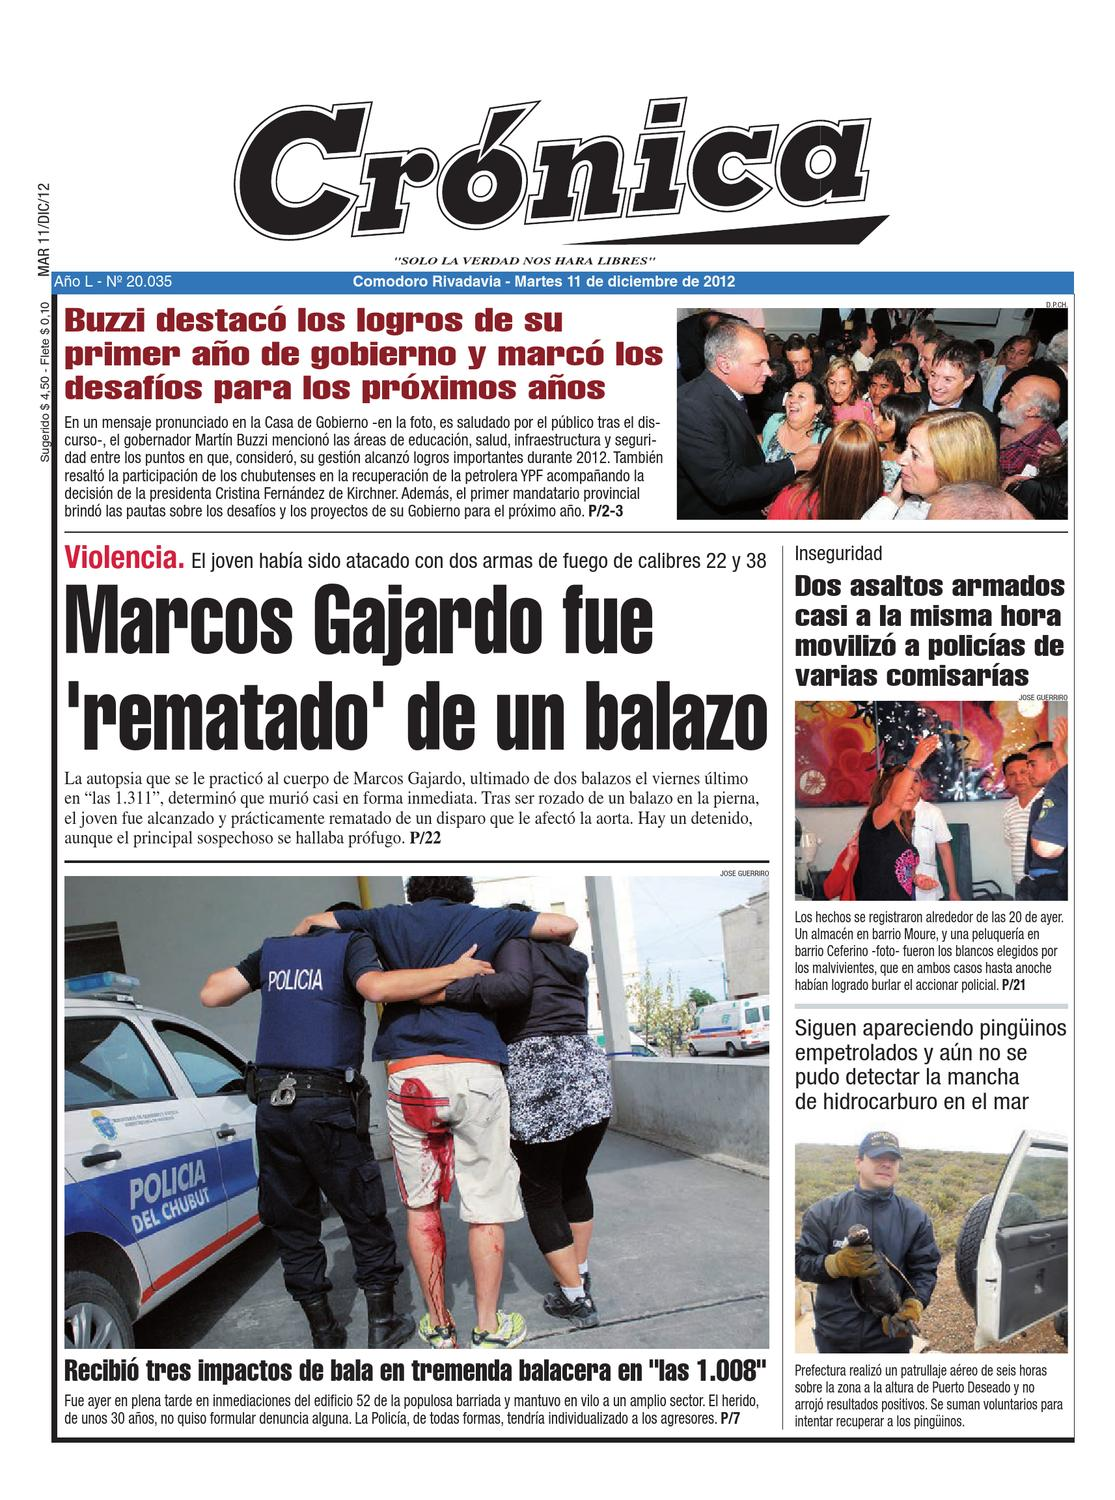 6dec91f11b523403daeaf2ce08692e6b by Diario Crónica - issuu